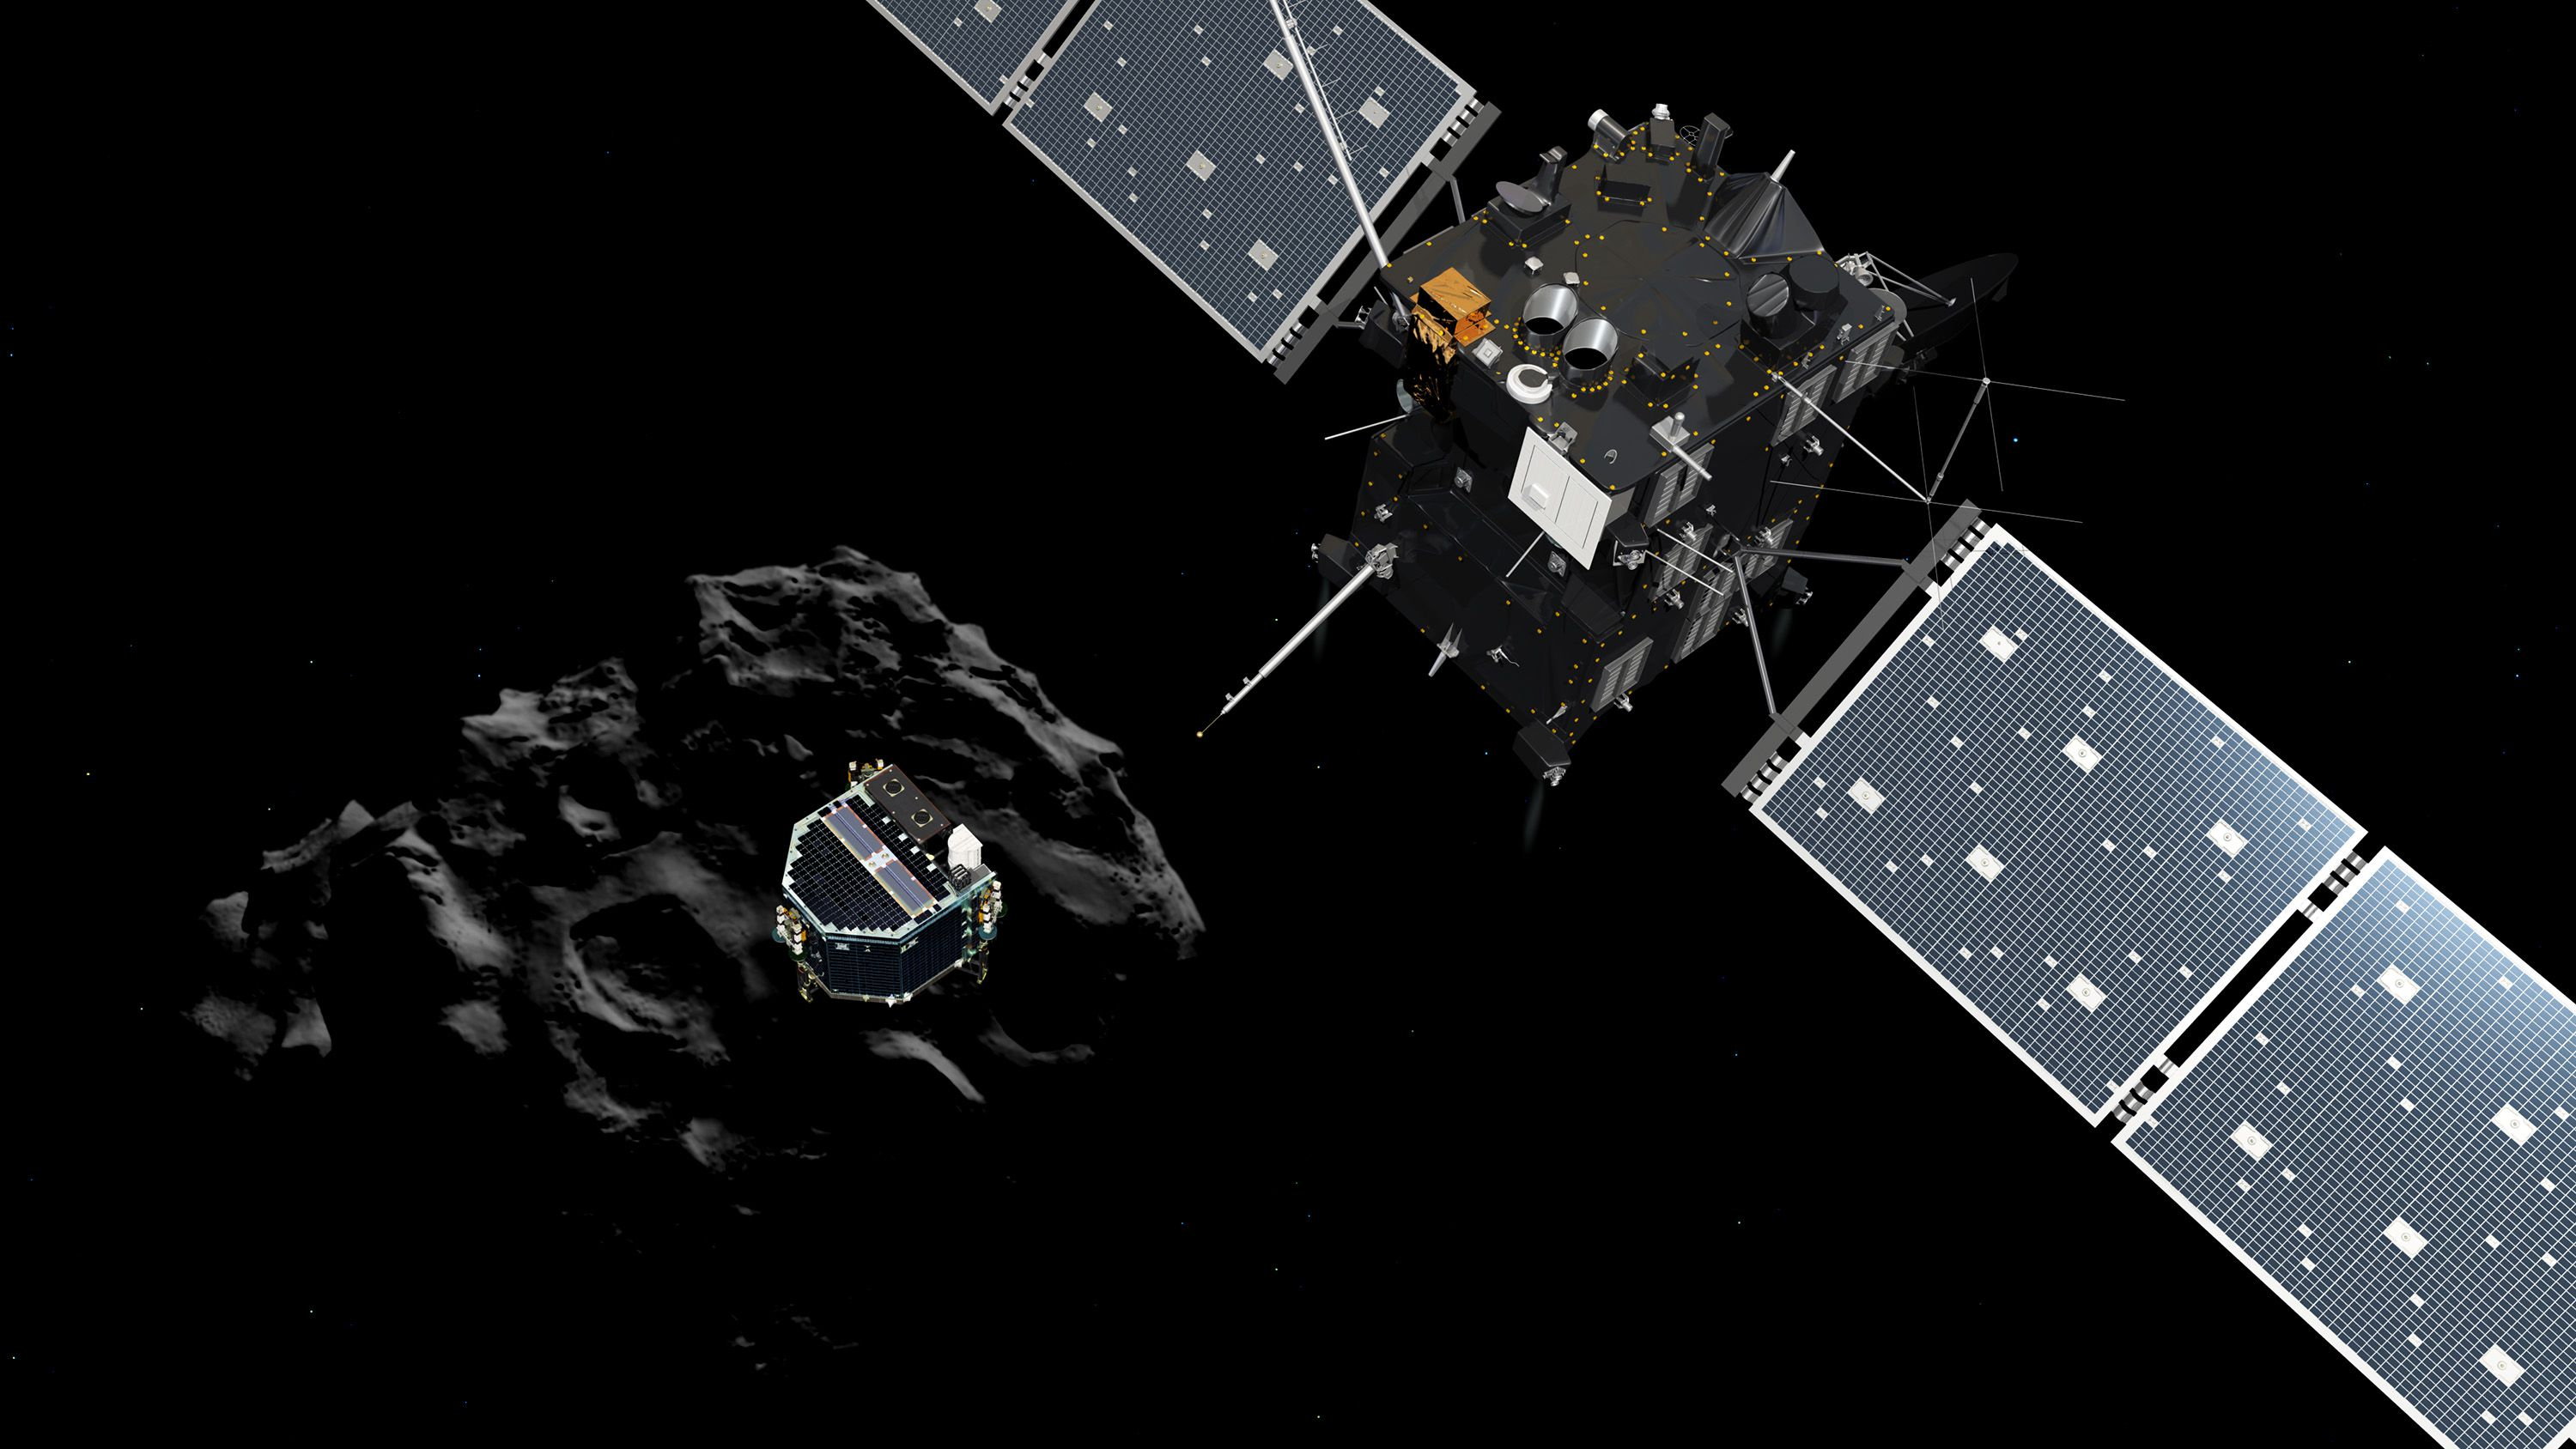 Rendering of the Philae lander detaching from the Rosetta orbiter.